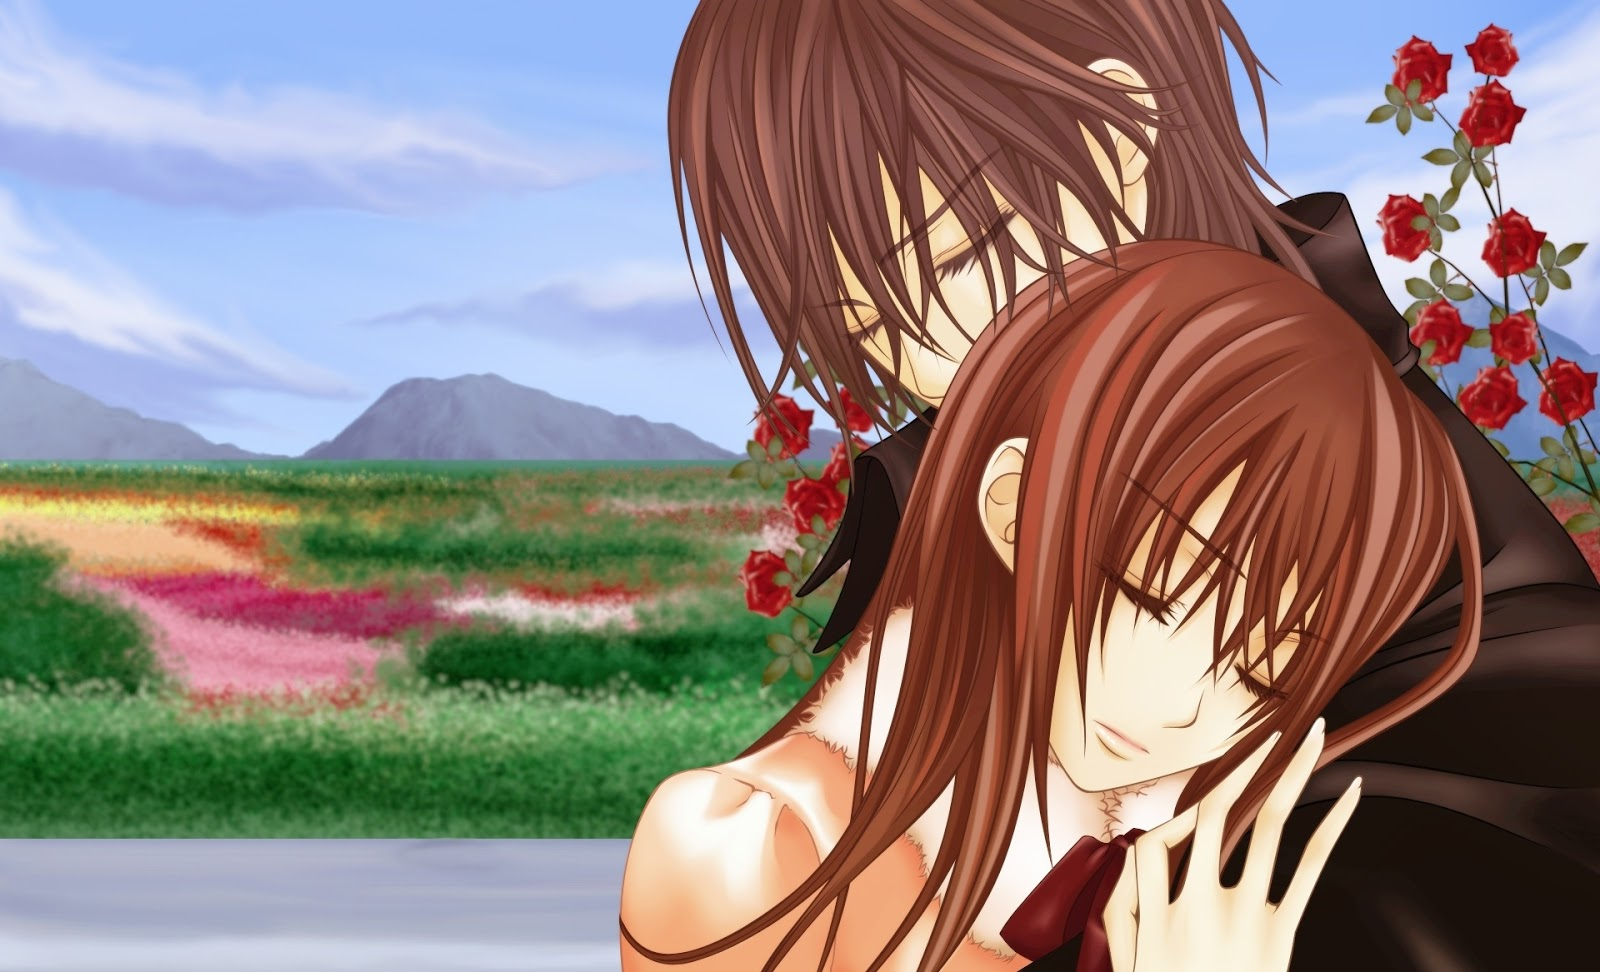 Love Wallpaper Full Hd Boy And Girl : Munecas manga anime Fondos de pantalla y mucho mas